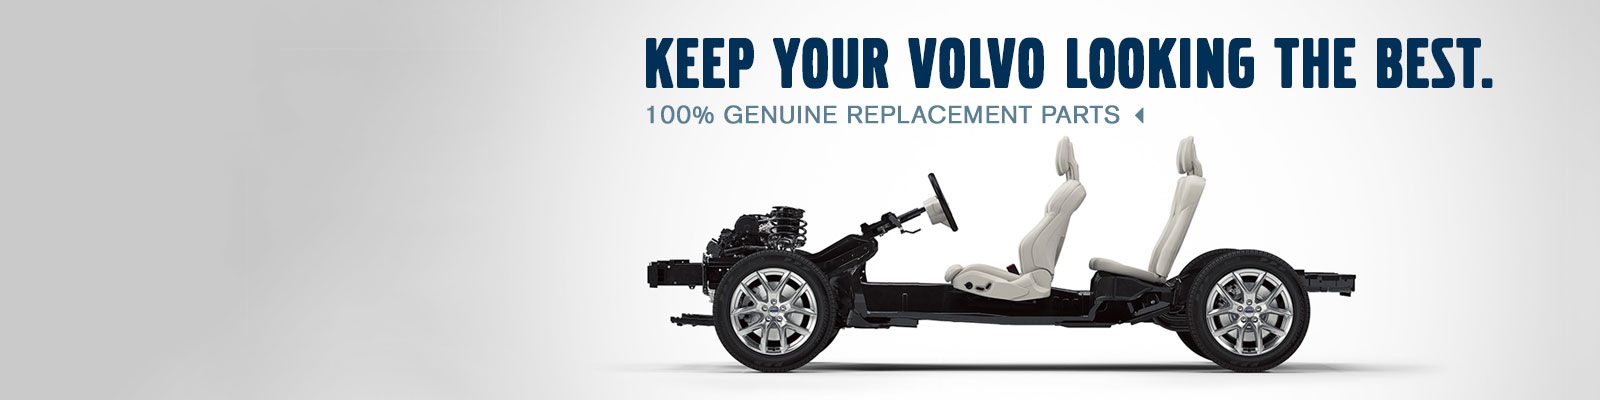 Volvo Parts Counter Banner 4